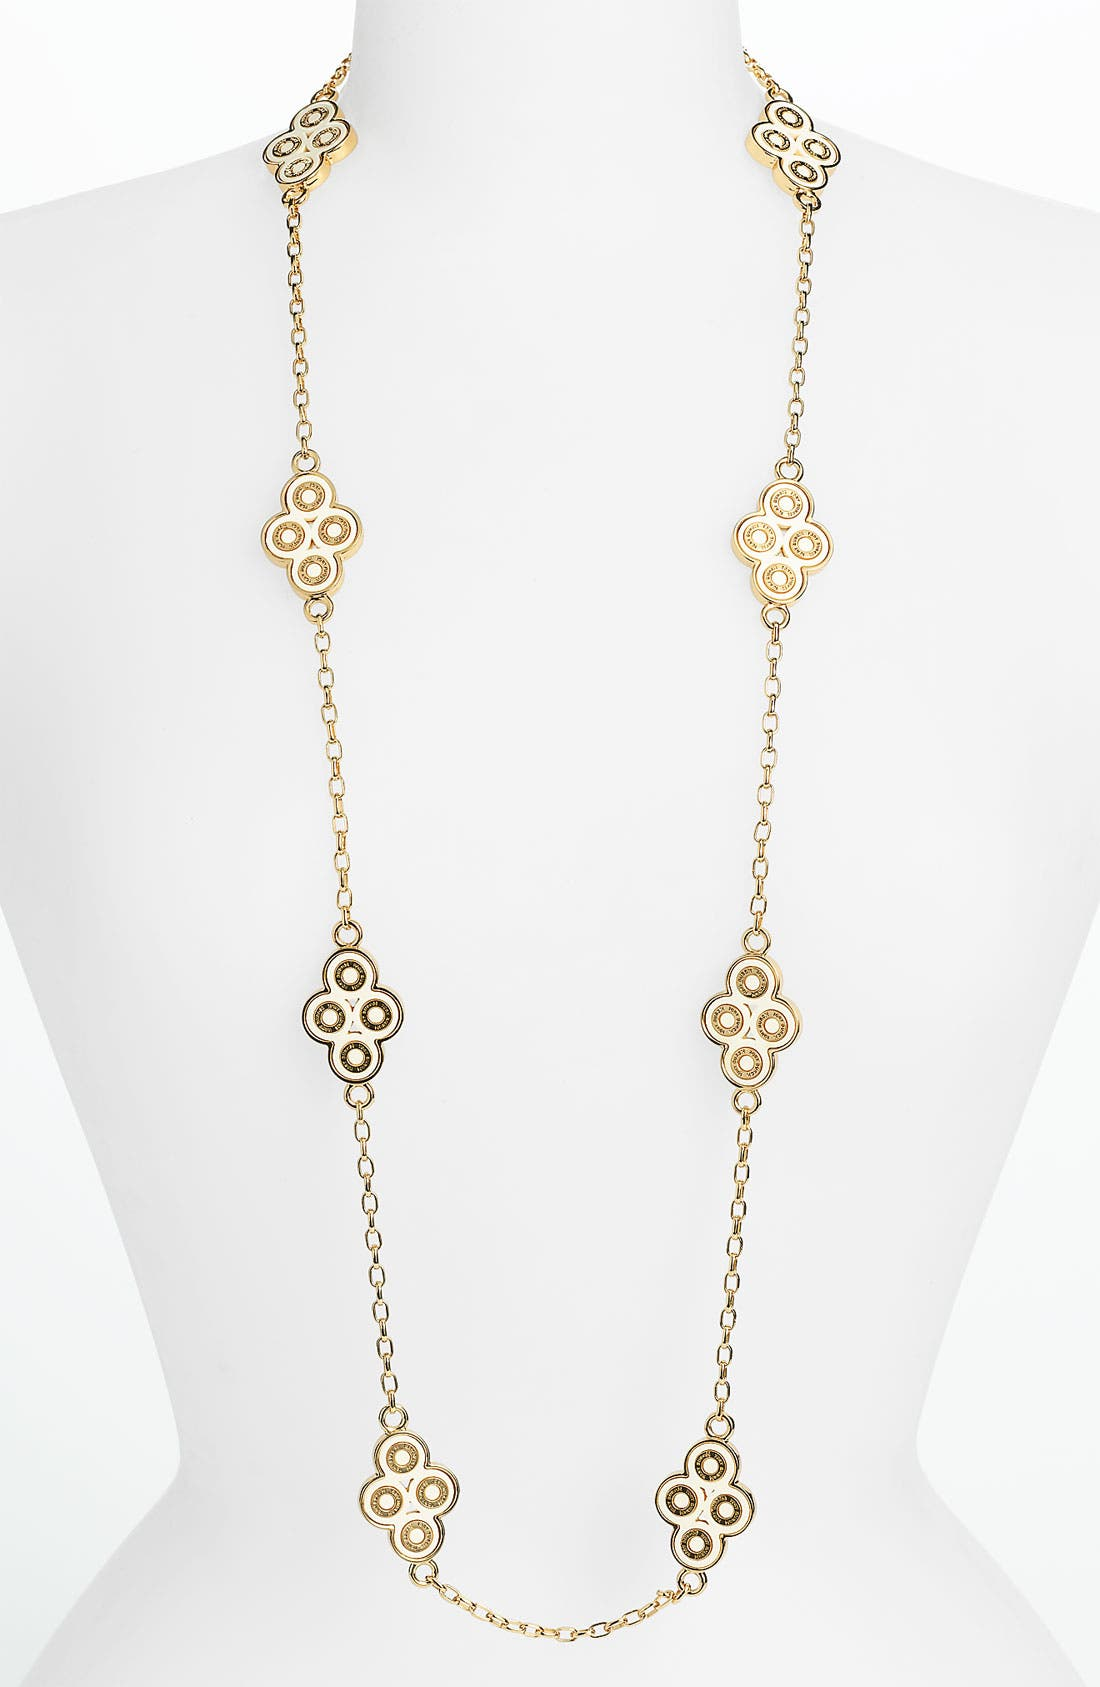 Alternate Image 1 Selected - Tory Burch 'Cole' Enamel Clover Necklace